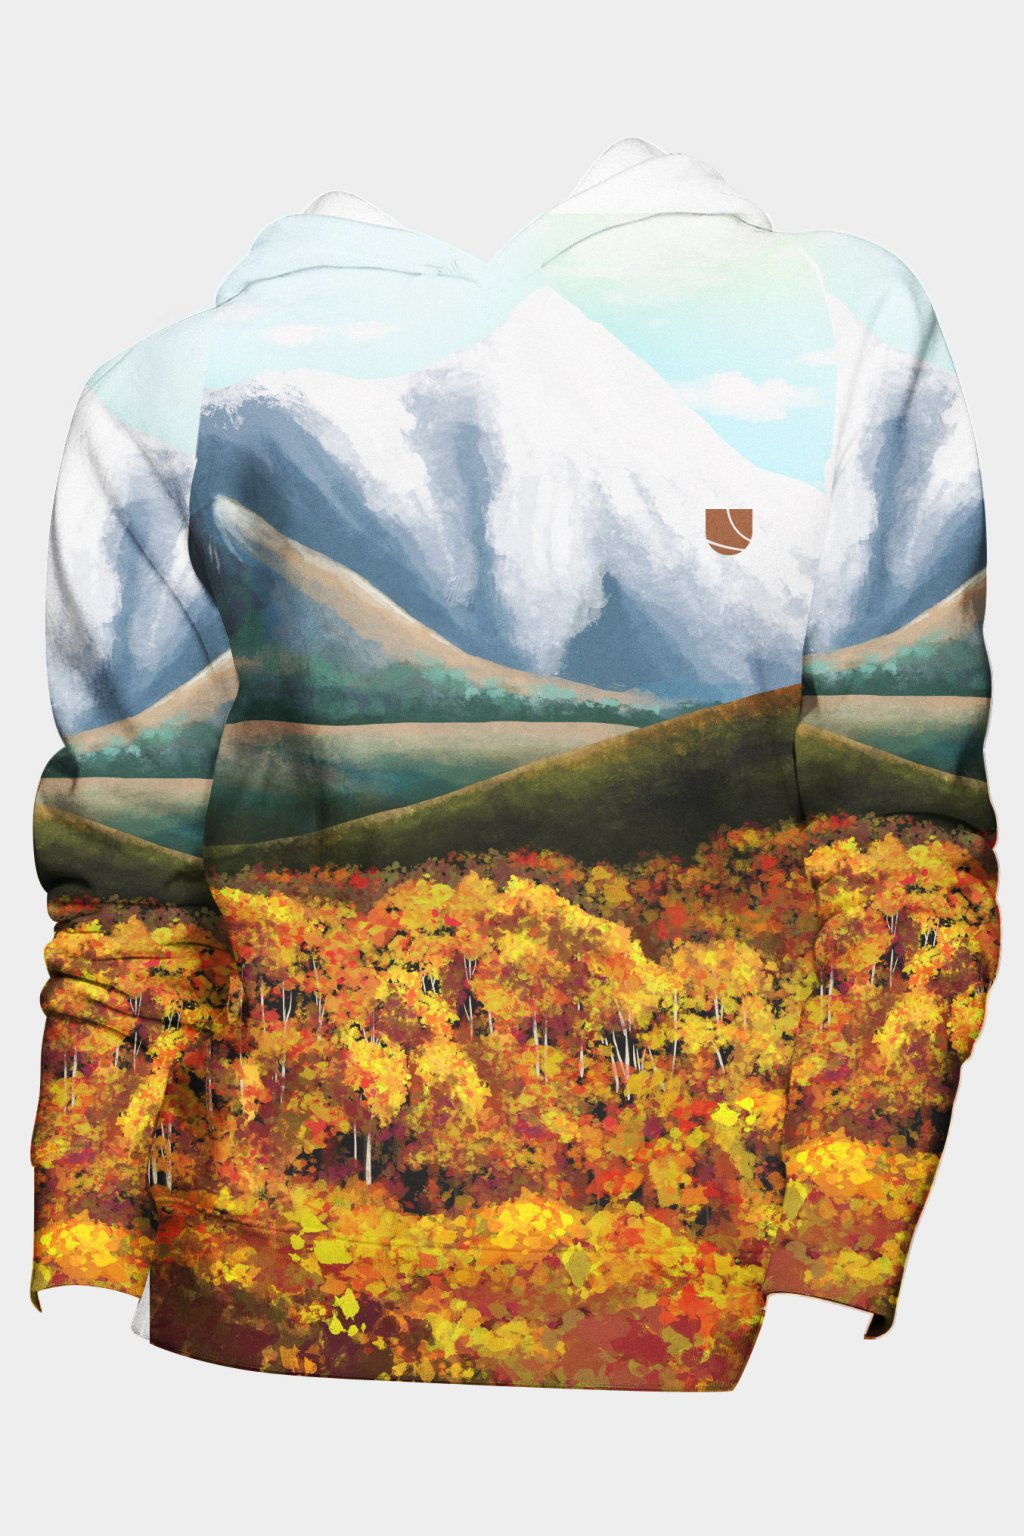 mikina mountain valley fullprint front by utopy